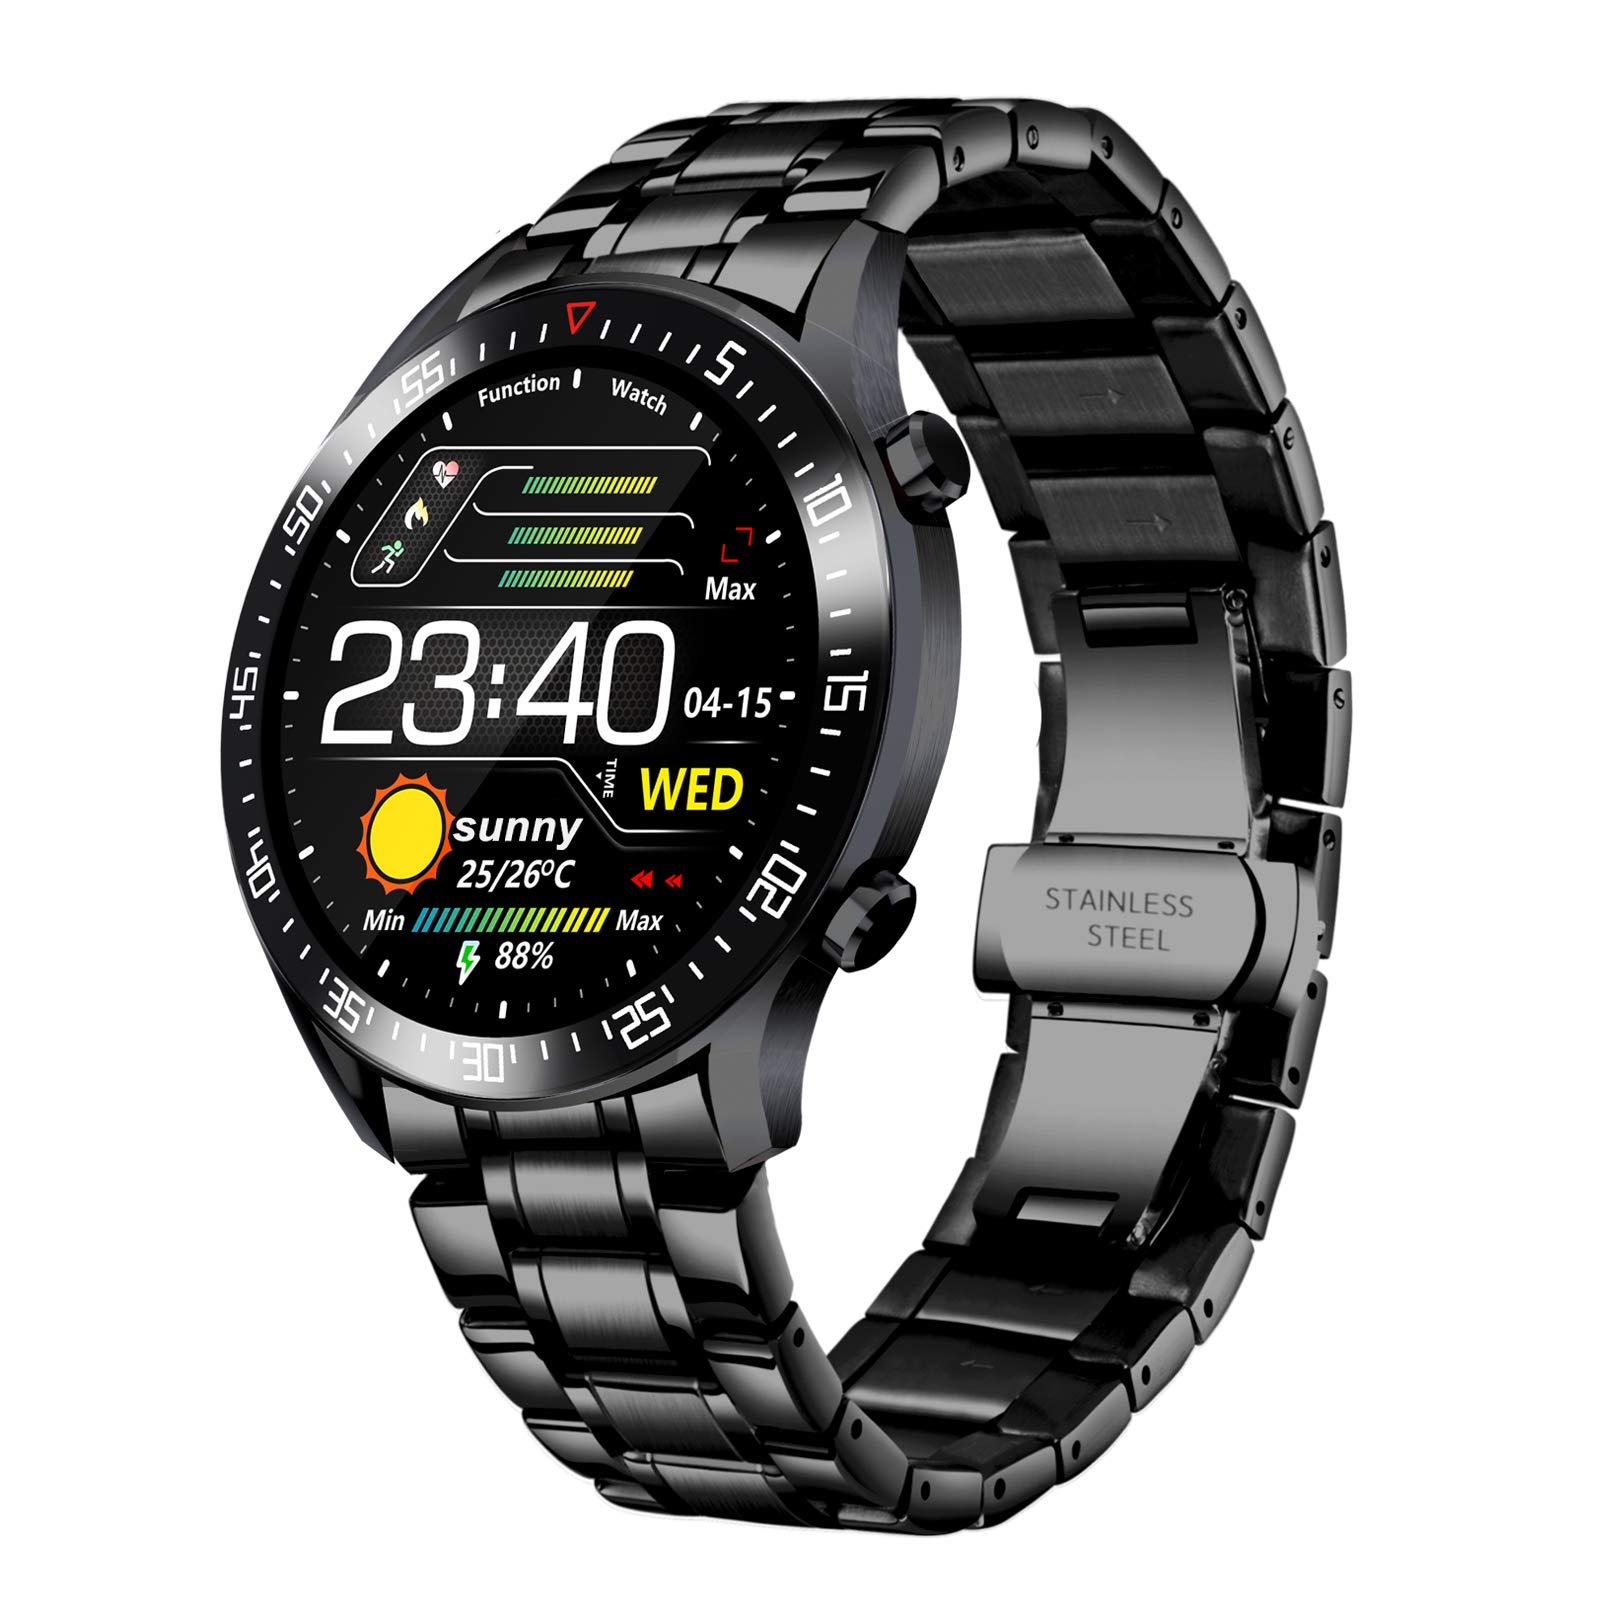 Smart Watch Men Activity Tracker, 1.4 Inch Large Screen Fitness Watches with GPS Blood Pressure Health Monitor Pedometer for iPhone and Android Phones, Stainless Steel